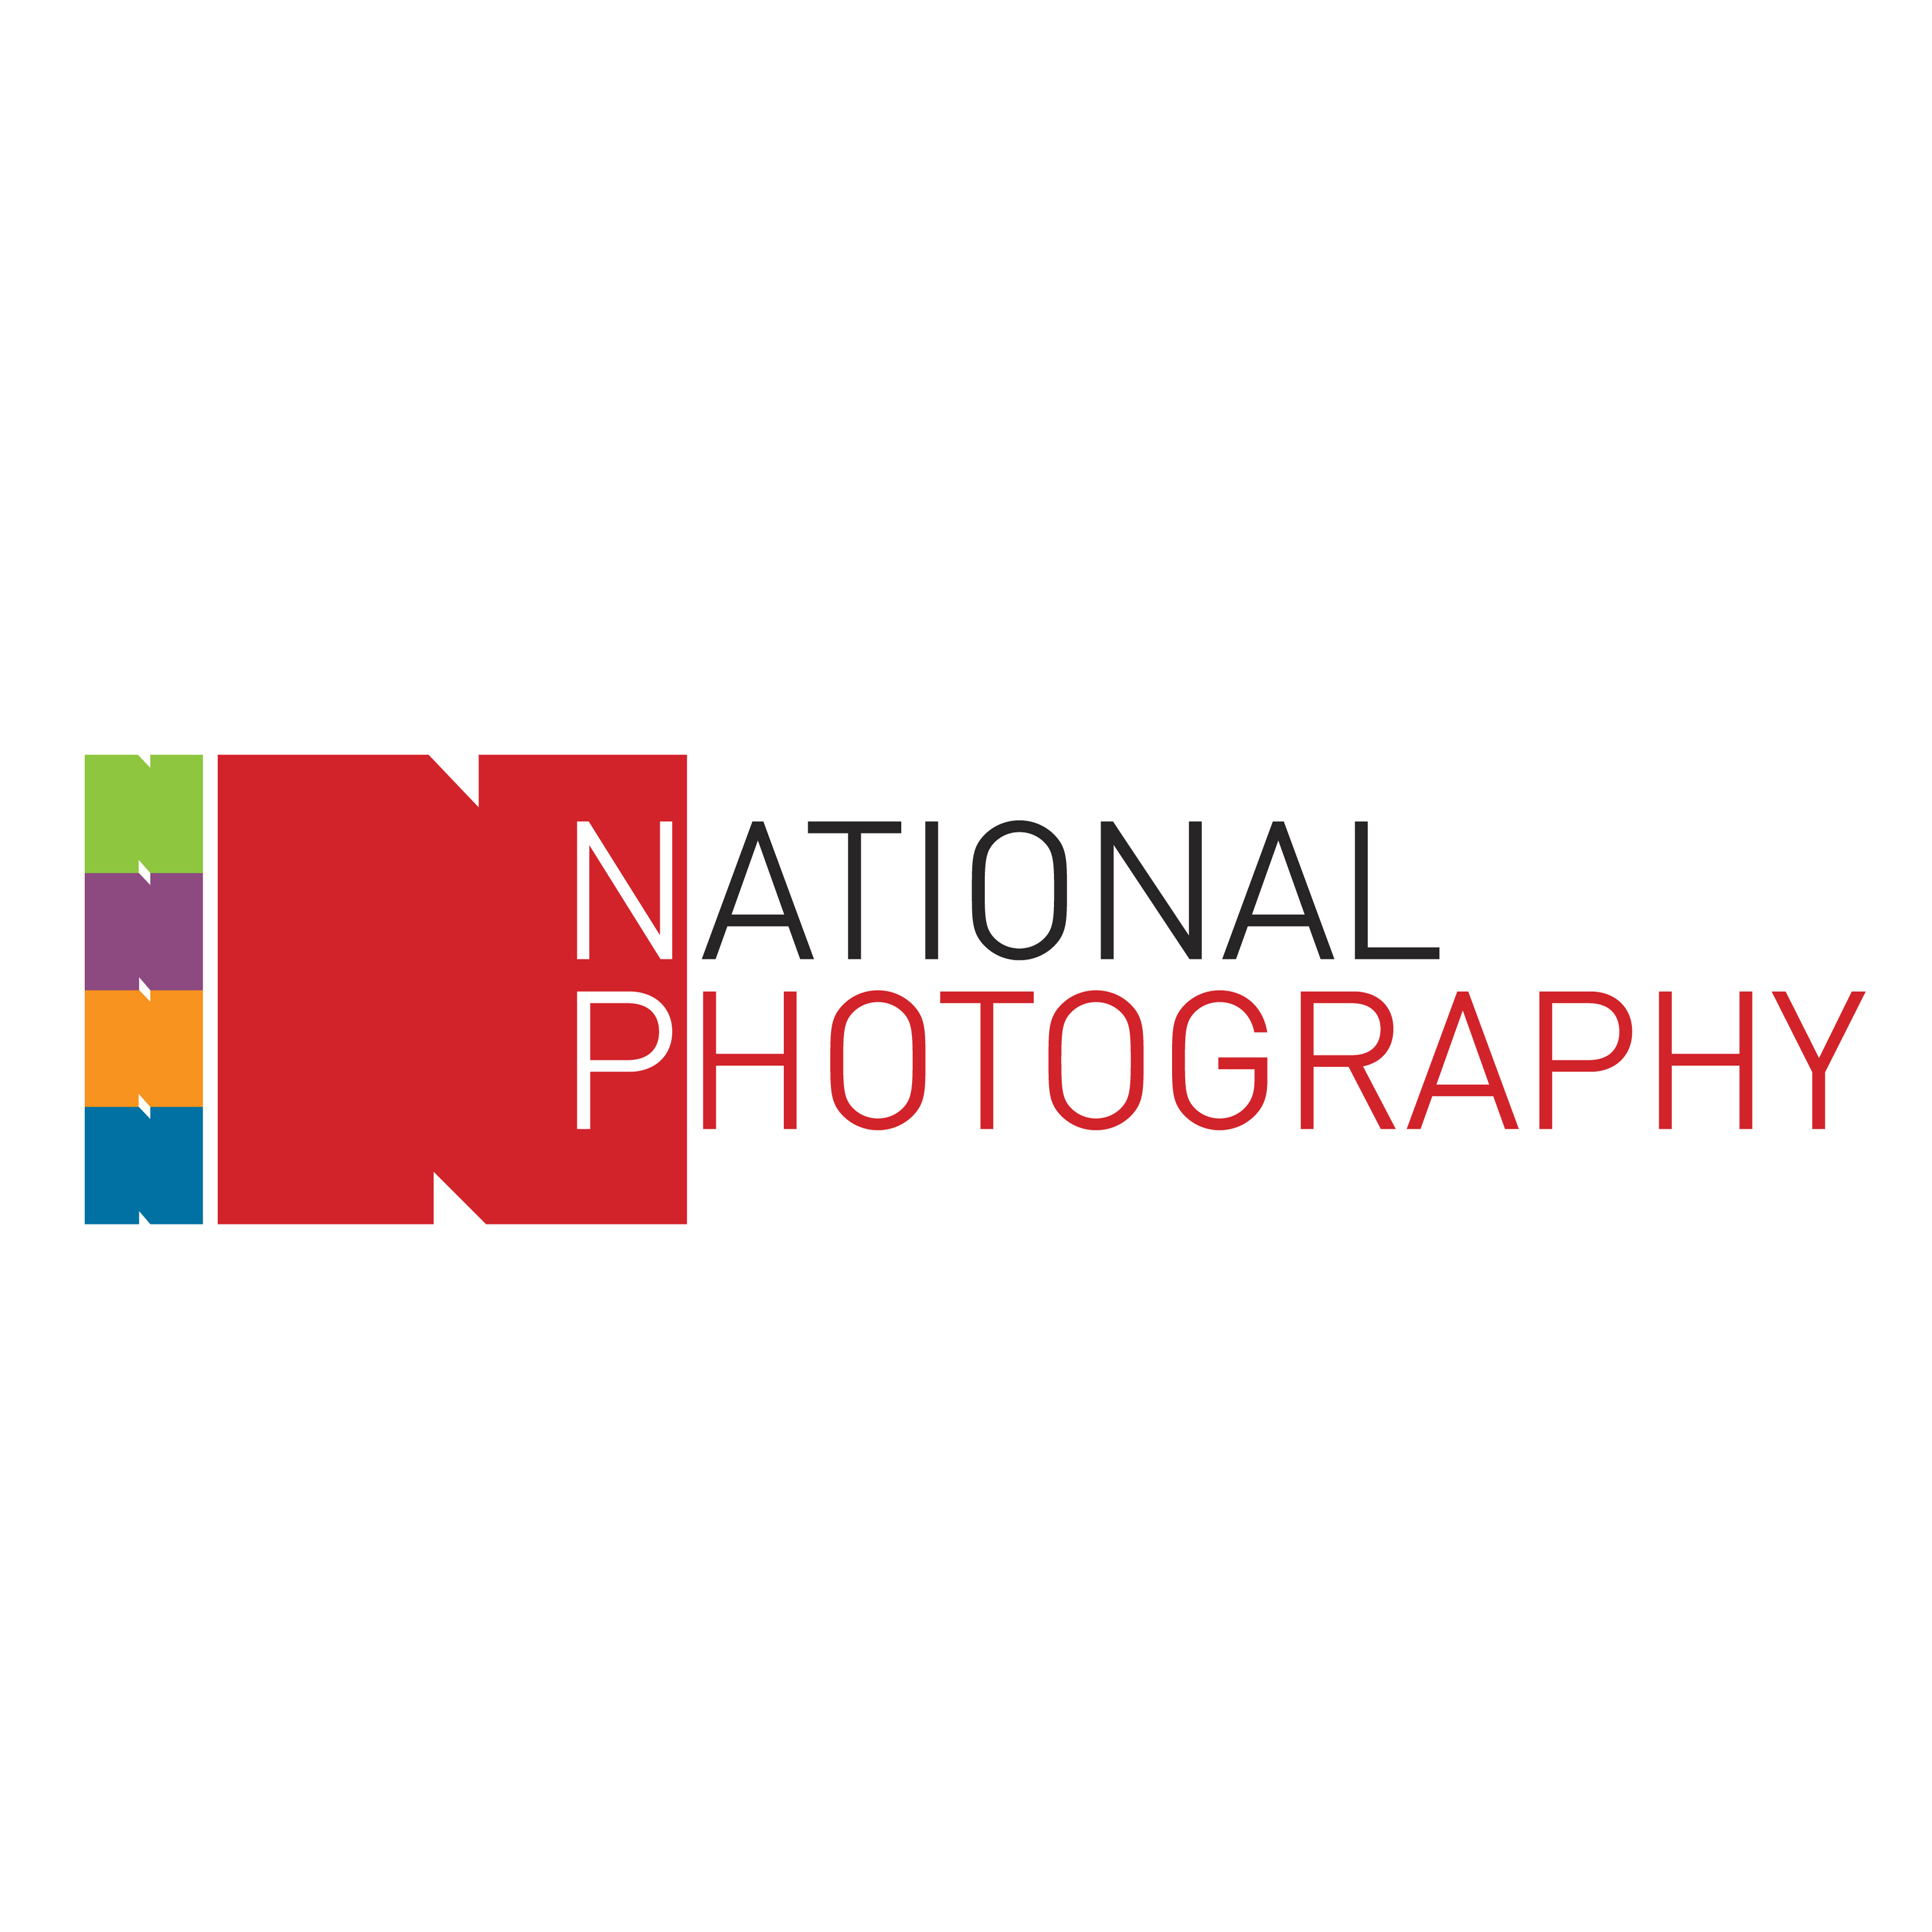 National Photography